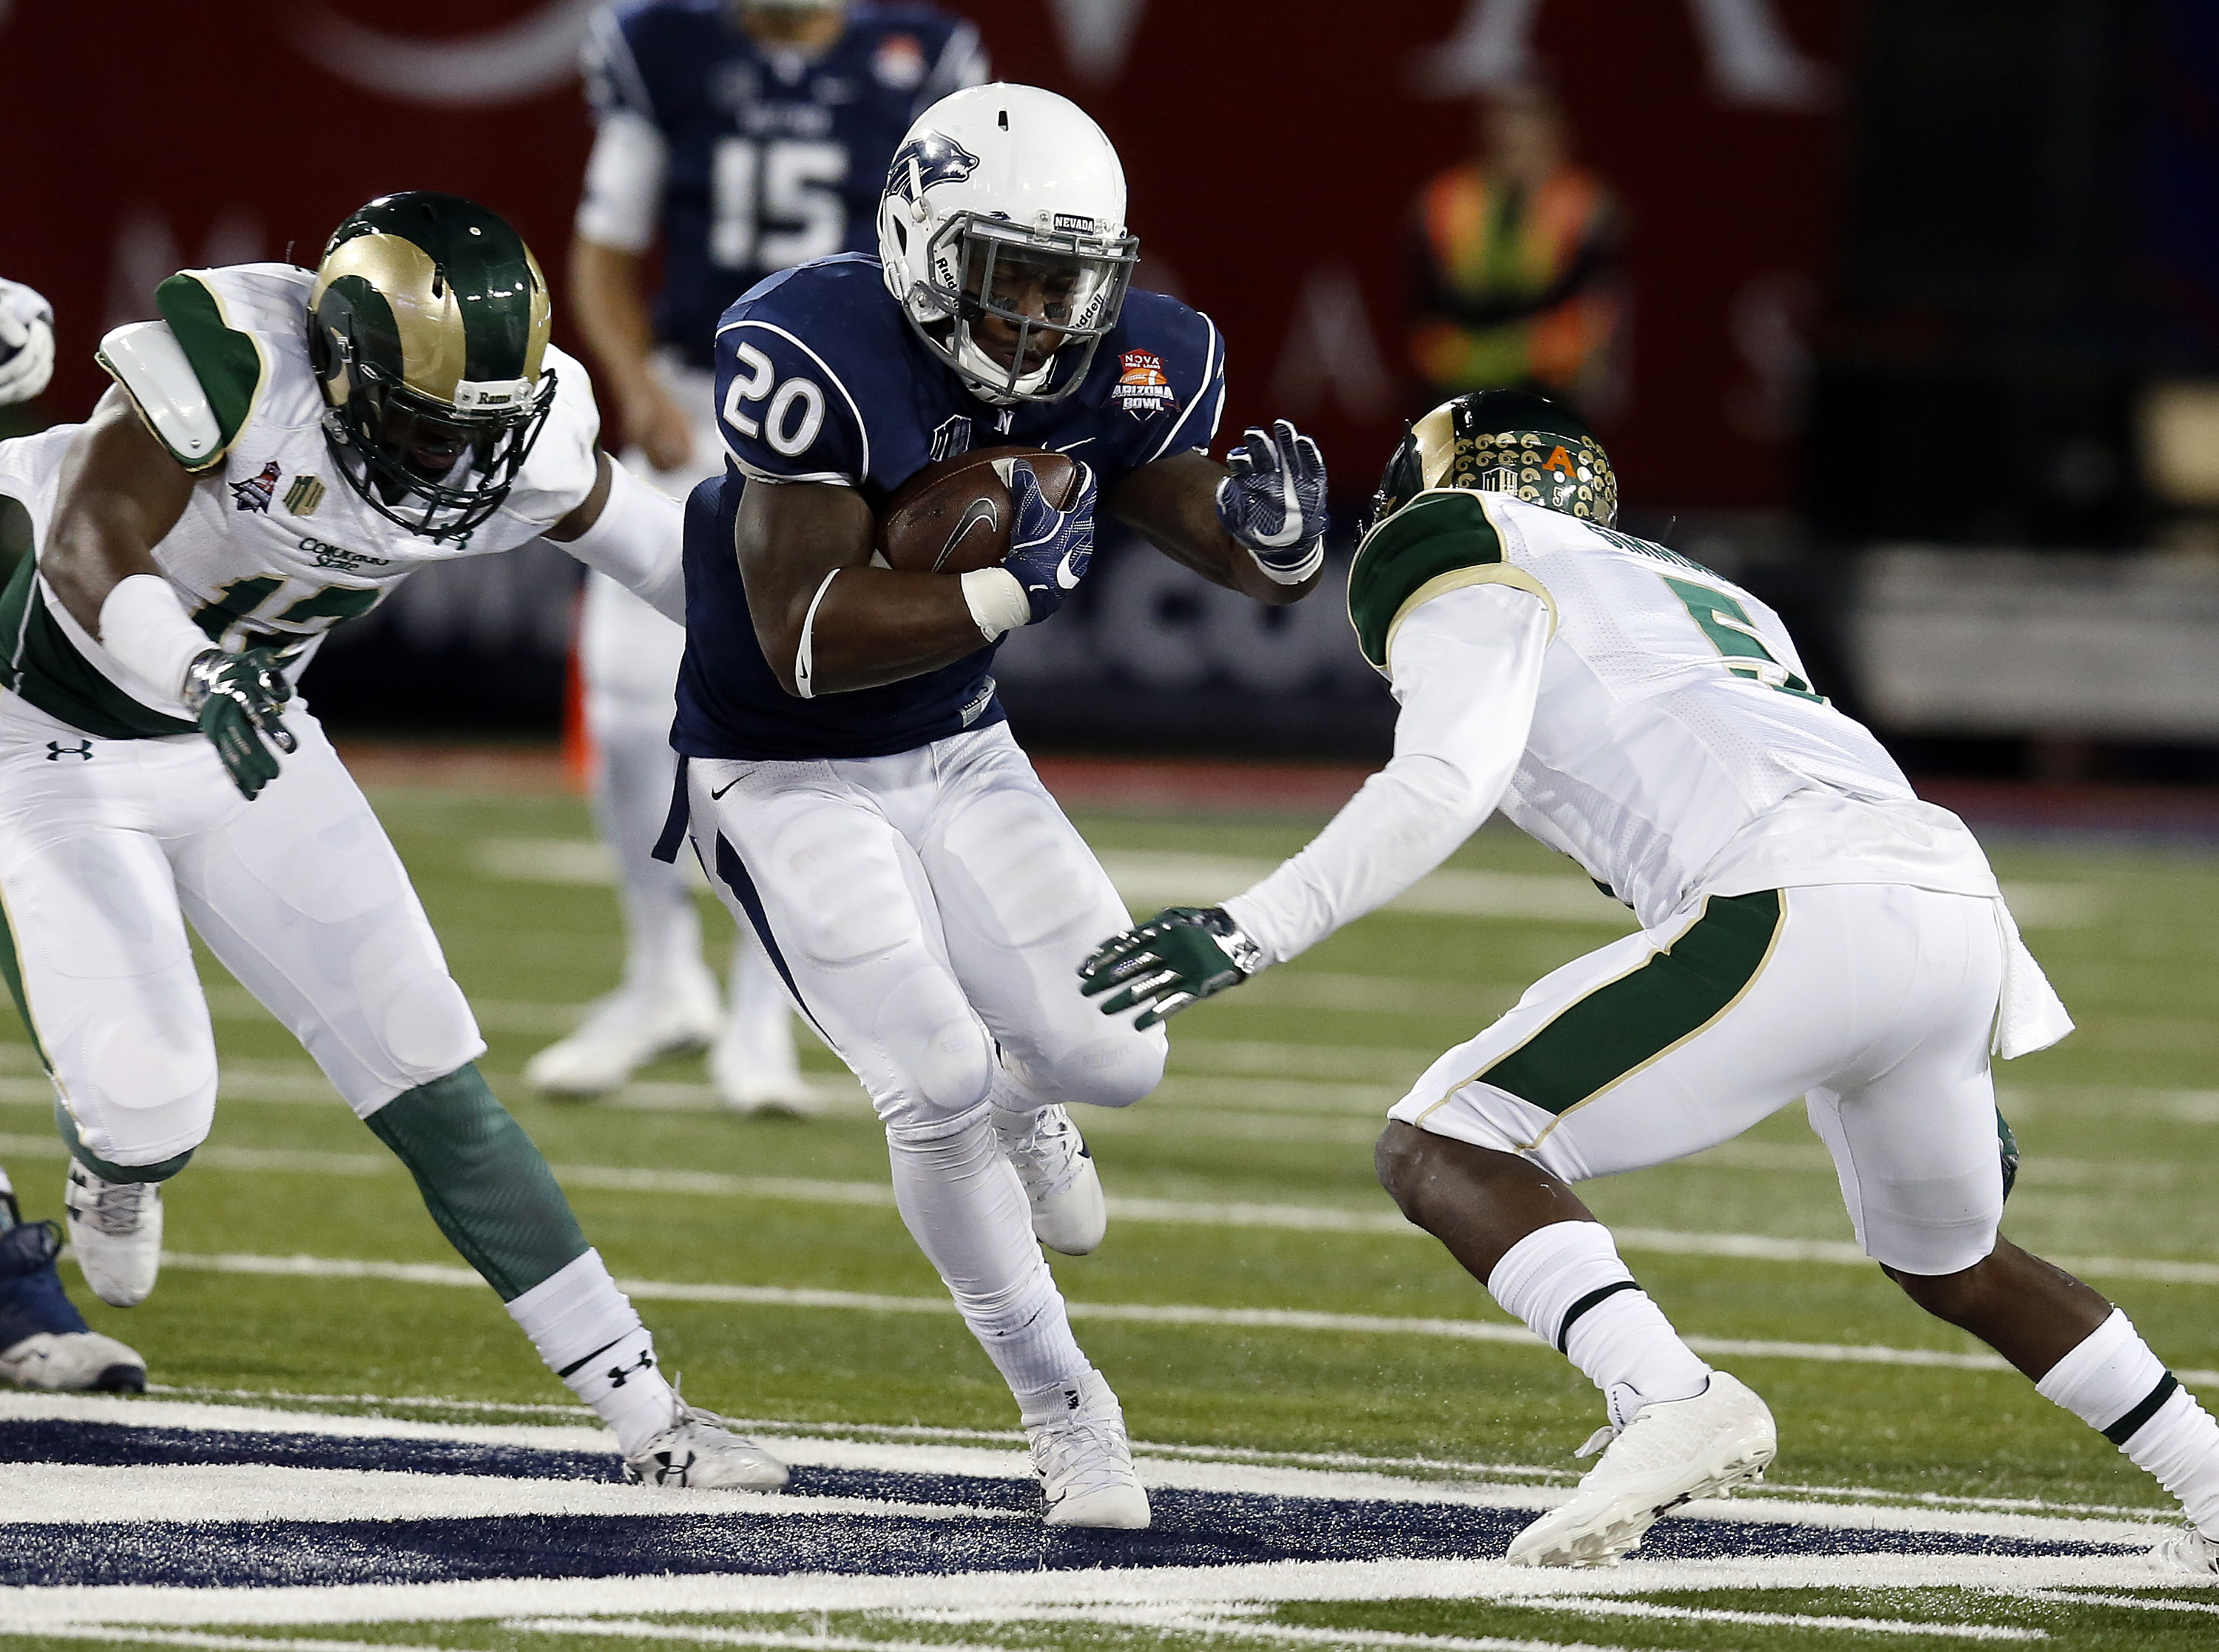 Nevada running back James Butler (20) carries the ball during the first half of the Arizona Bowl NCAA college football game against Colorado State, Tuesday, Dec. 29, 2015, in Tucson, Ariz. (AP Photo/Rick Scuteri)